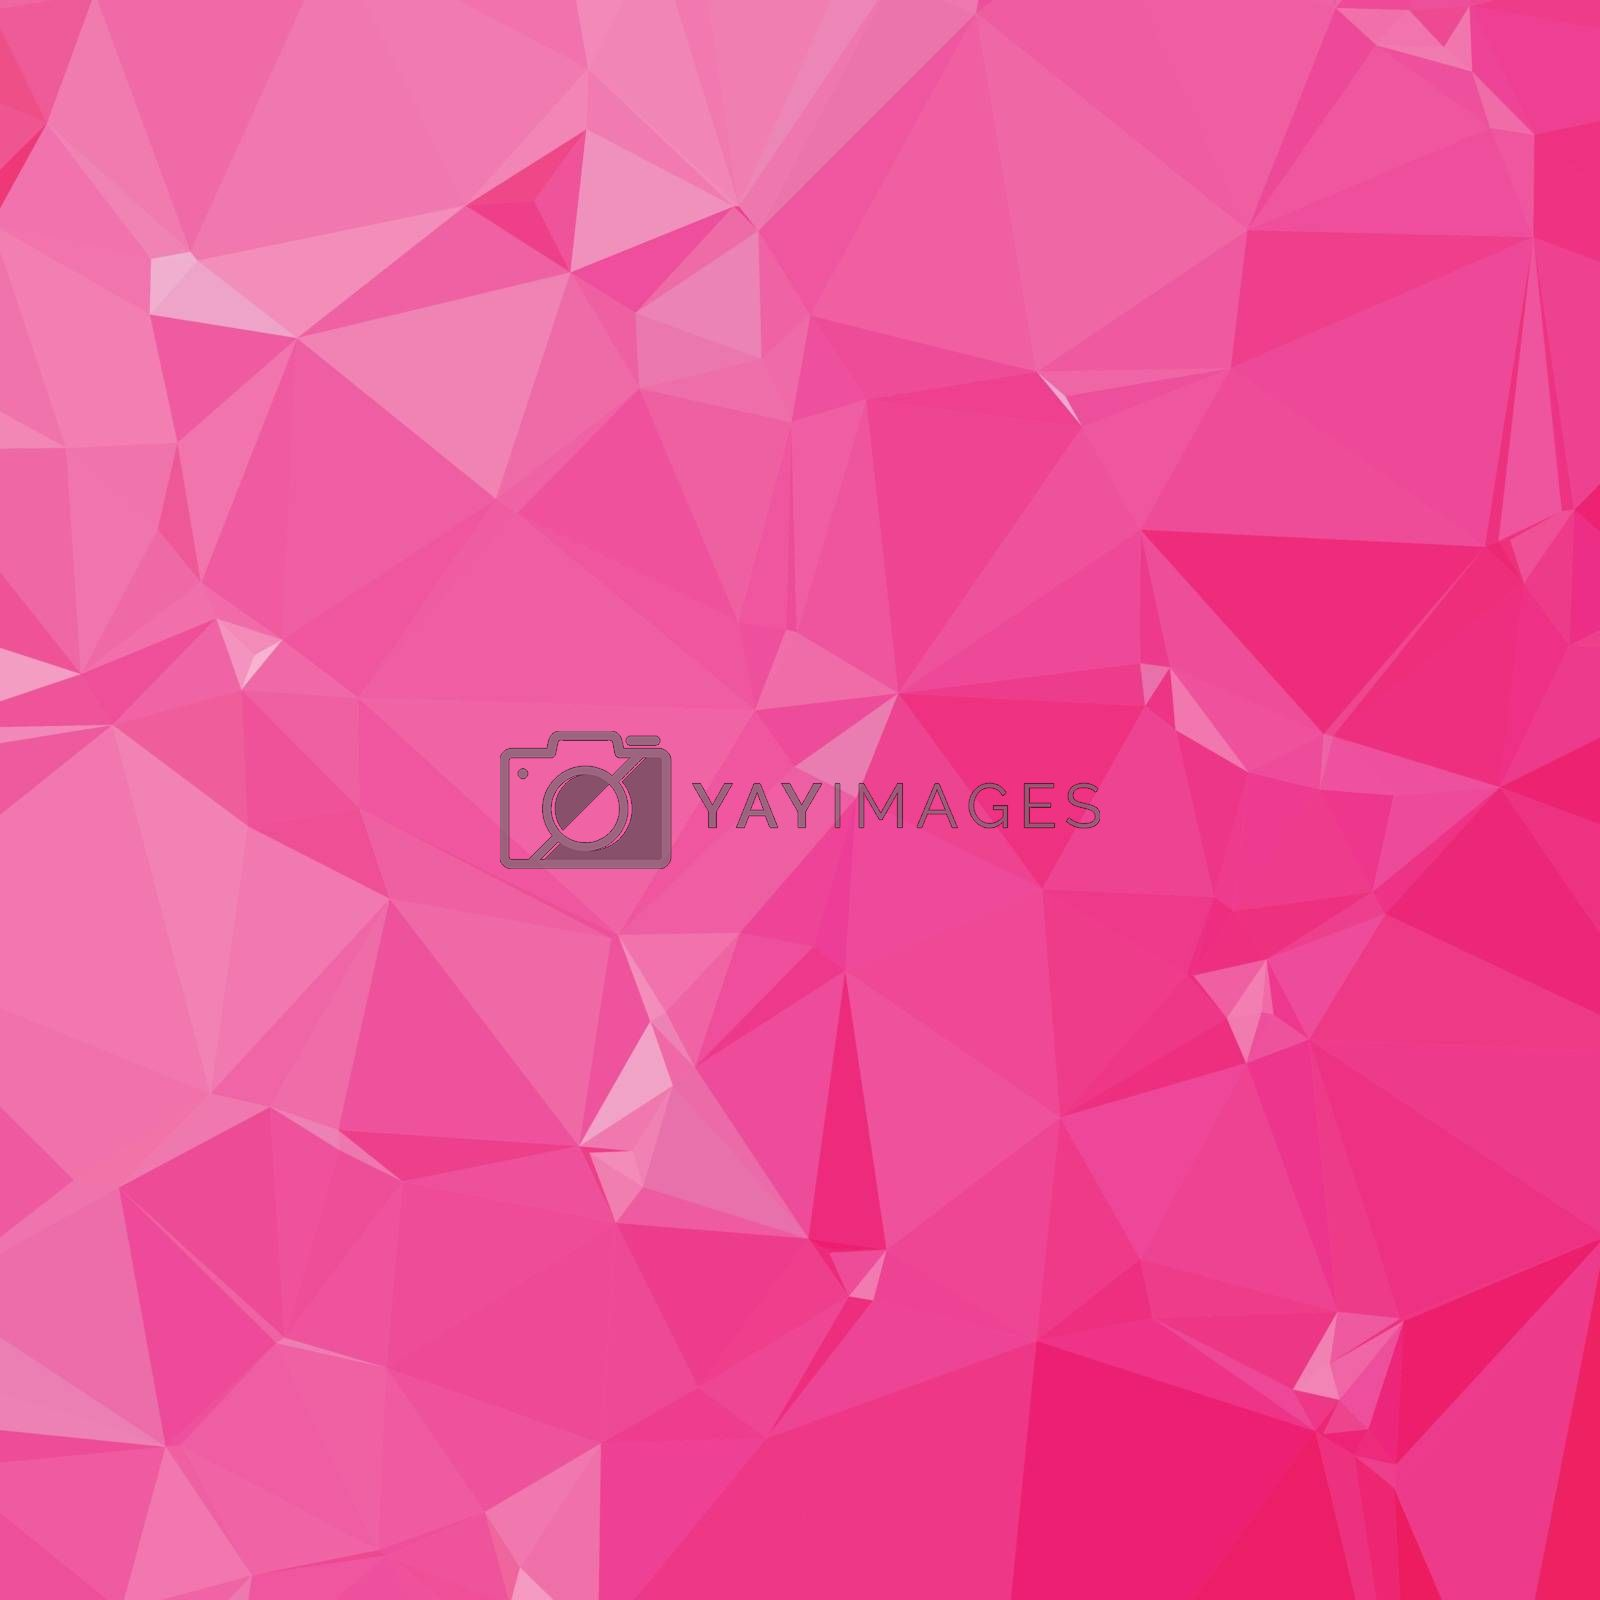 Low polygon style illustration of a persian rose pink abstract geometric background.